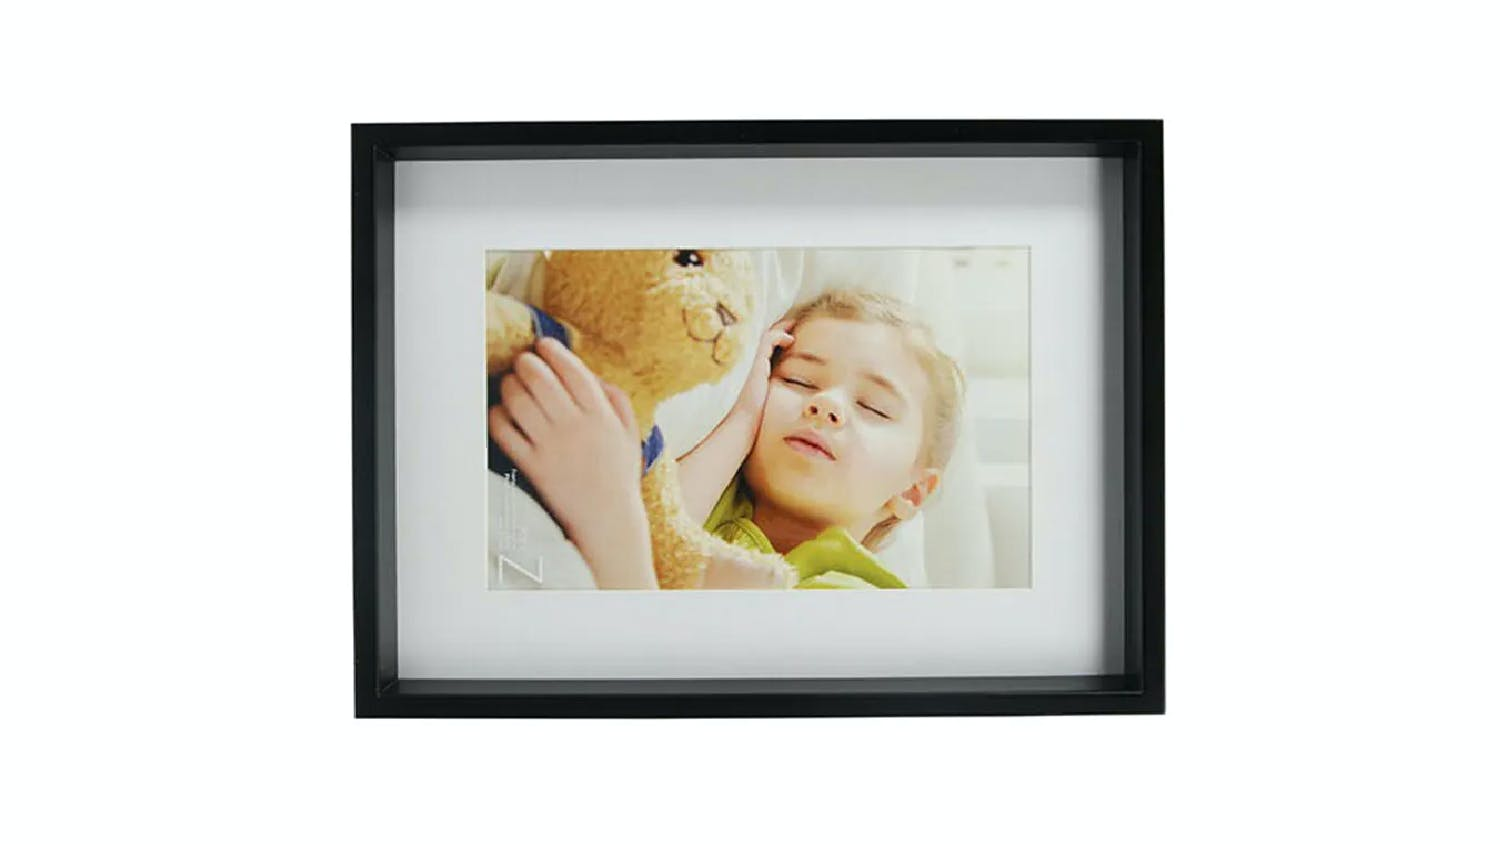 UR1 Zoey No Matt Chunky 12X16 Photo Frame with 8X12 Opening - Black